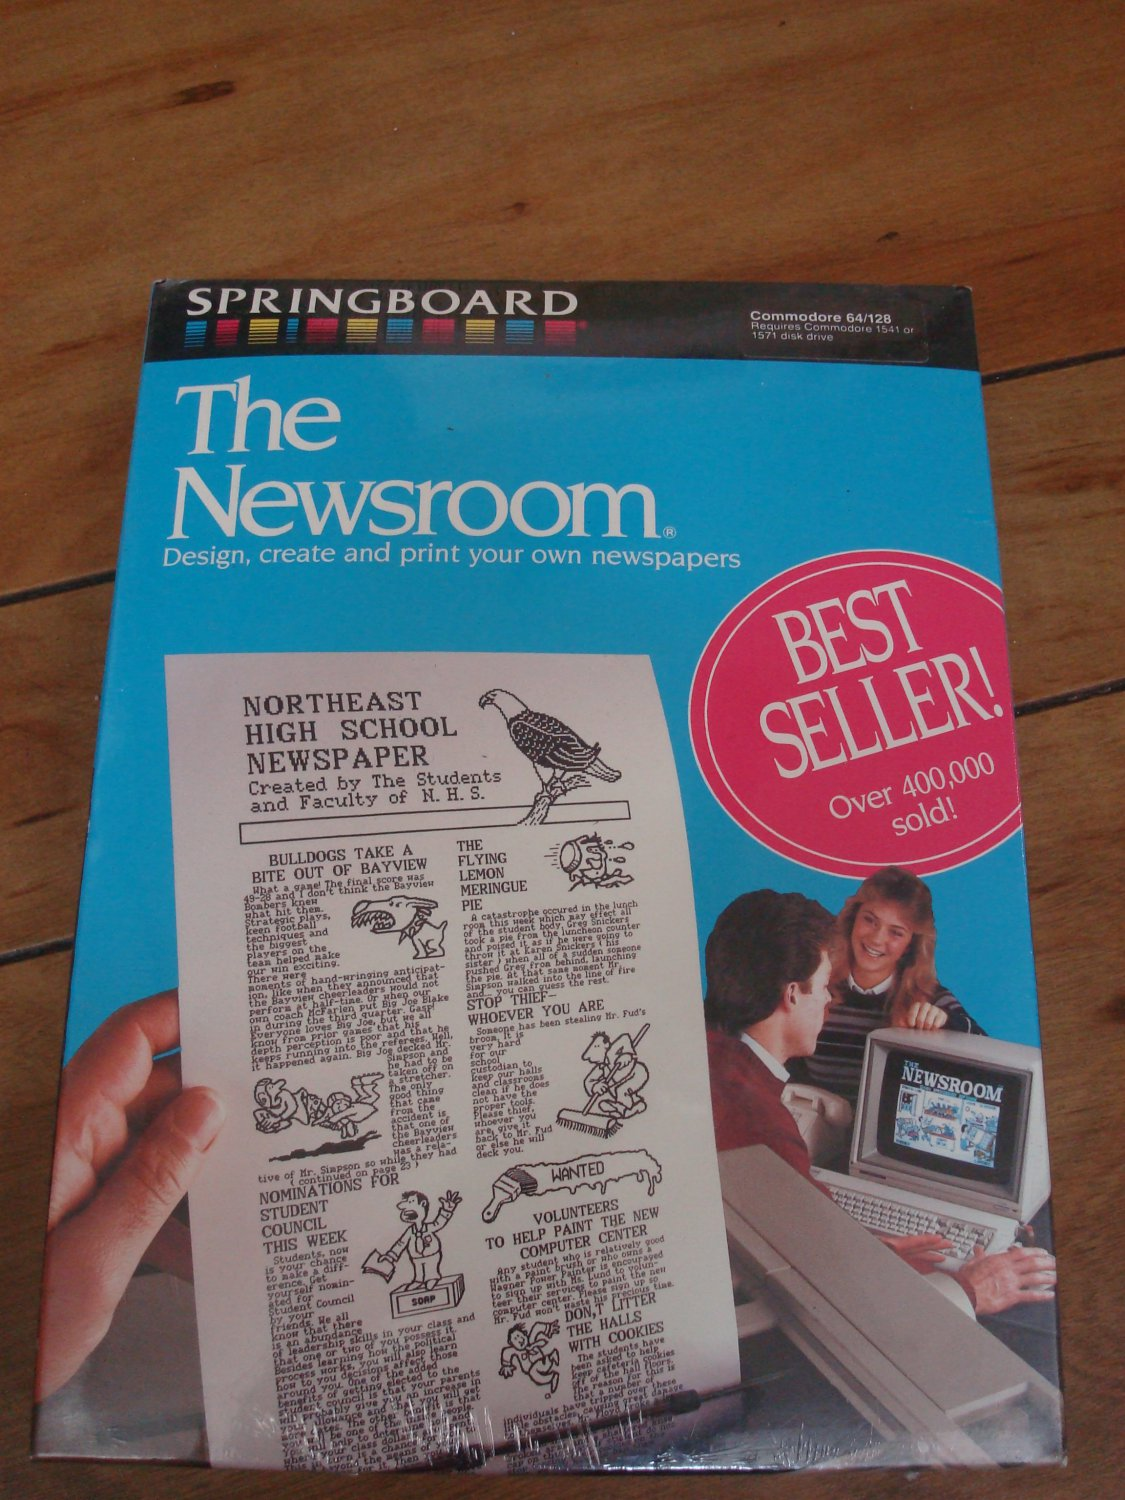 The Newsroom For Commodore 64 128, NEW FACTORY SEALED, Springboard